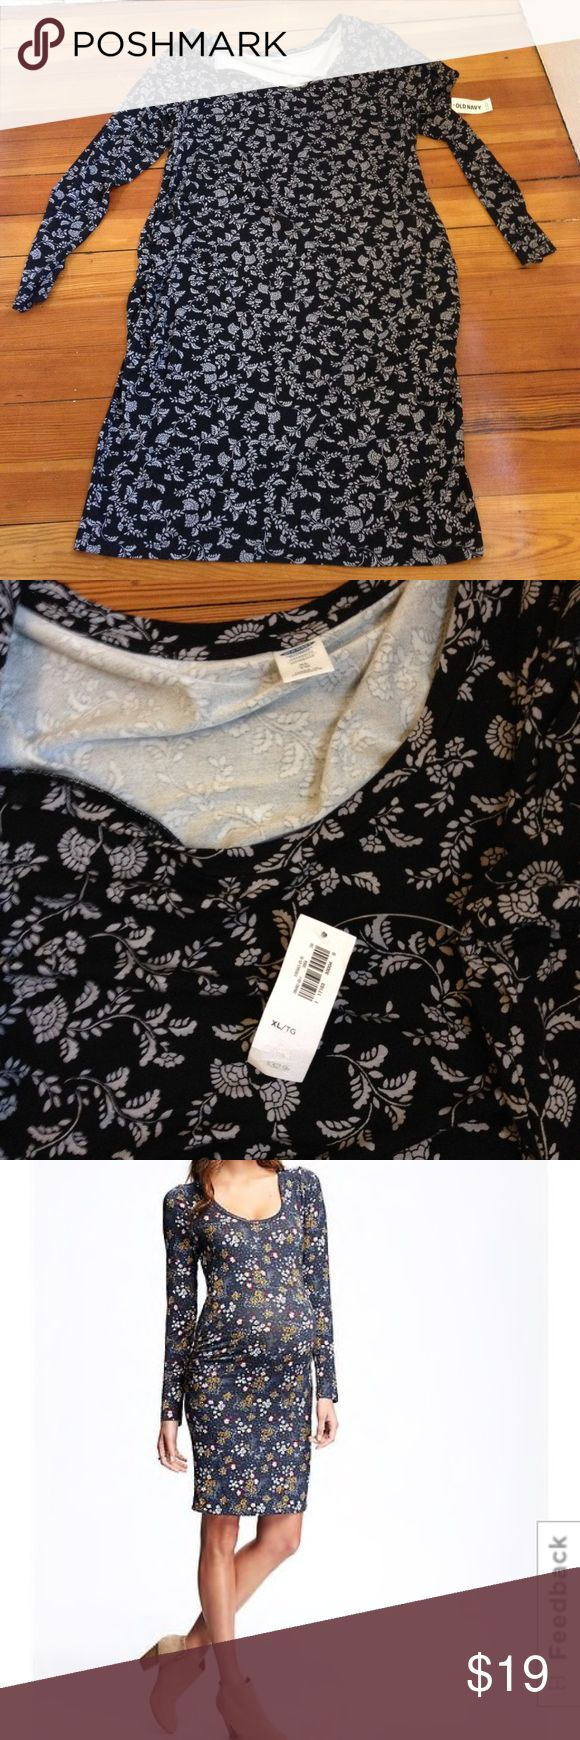 NWT Old Navy Maternity Dress BodyCon Grey Floral NWT Old Navy Maternity Dress BodyCon Grey Floral 3rd pic for modeling different print for sale Old Navy Dresses